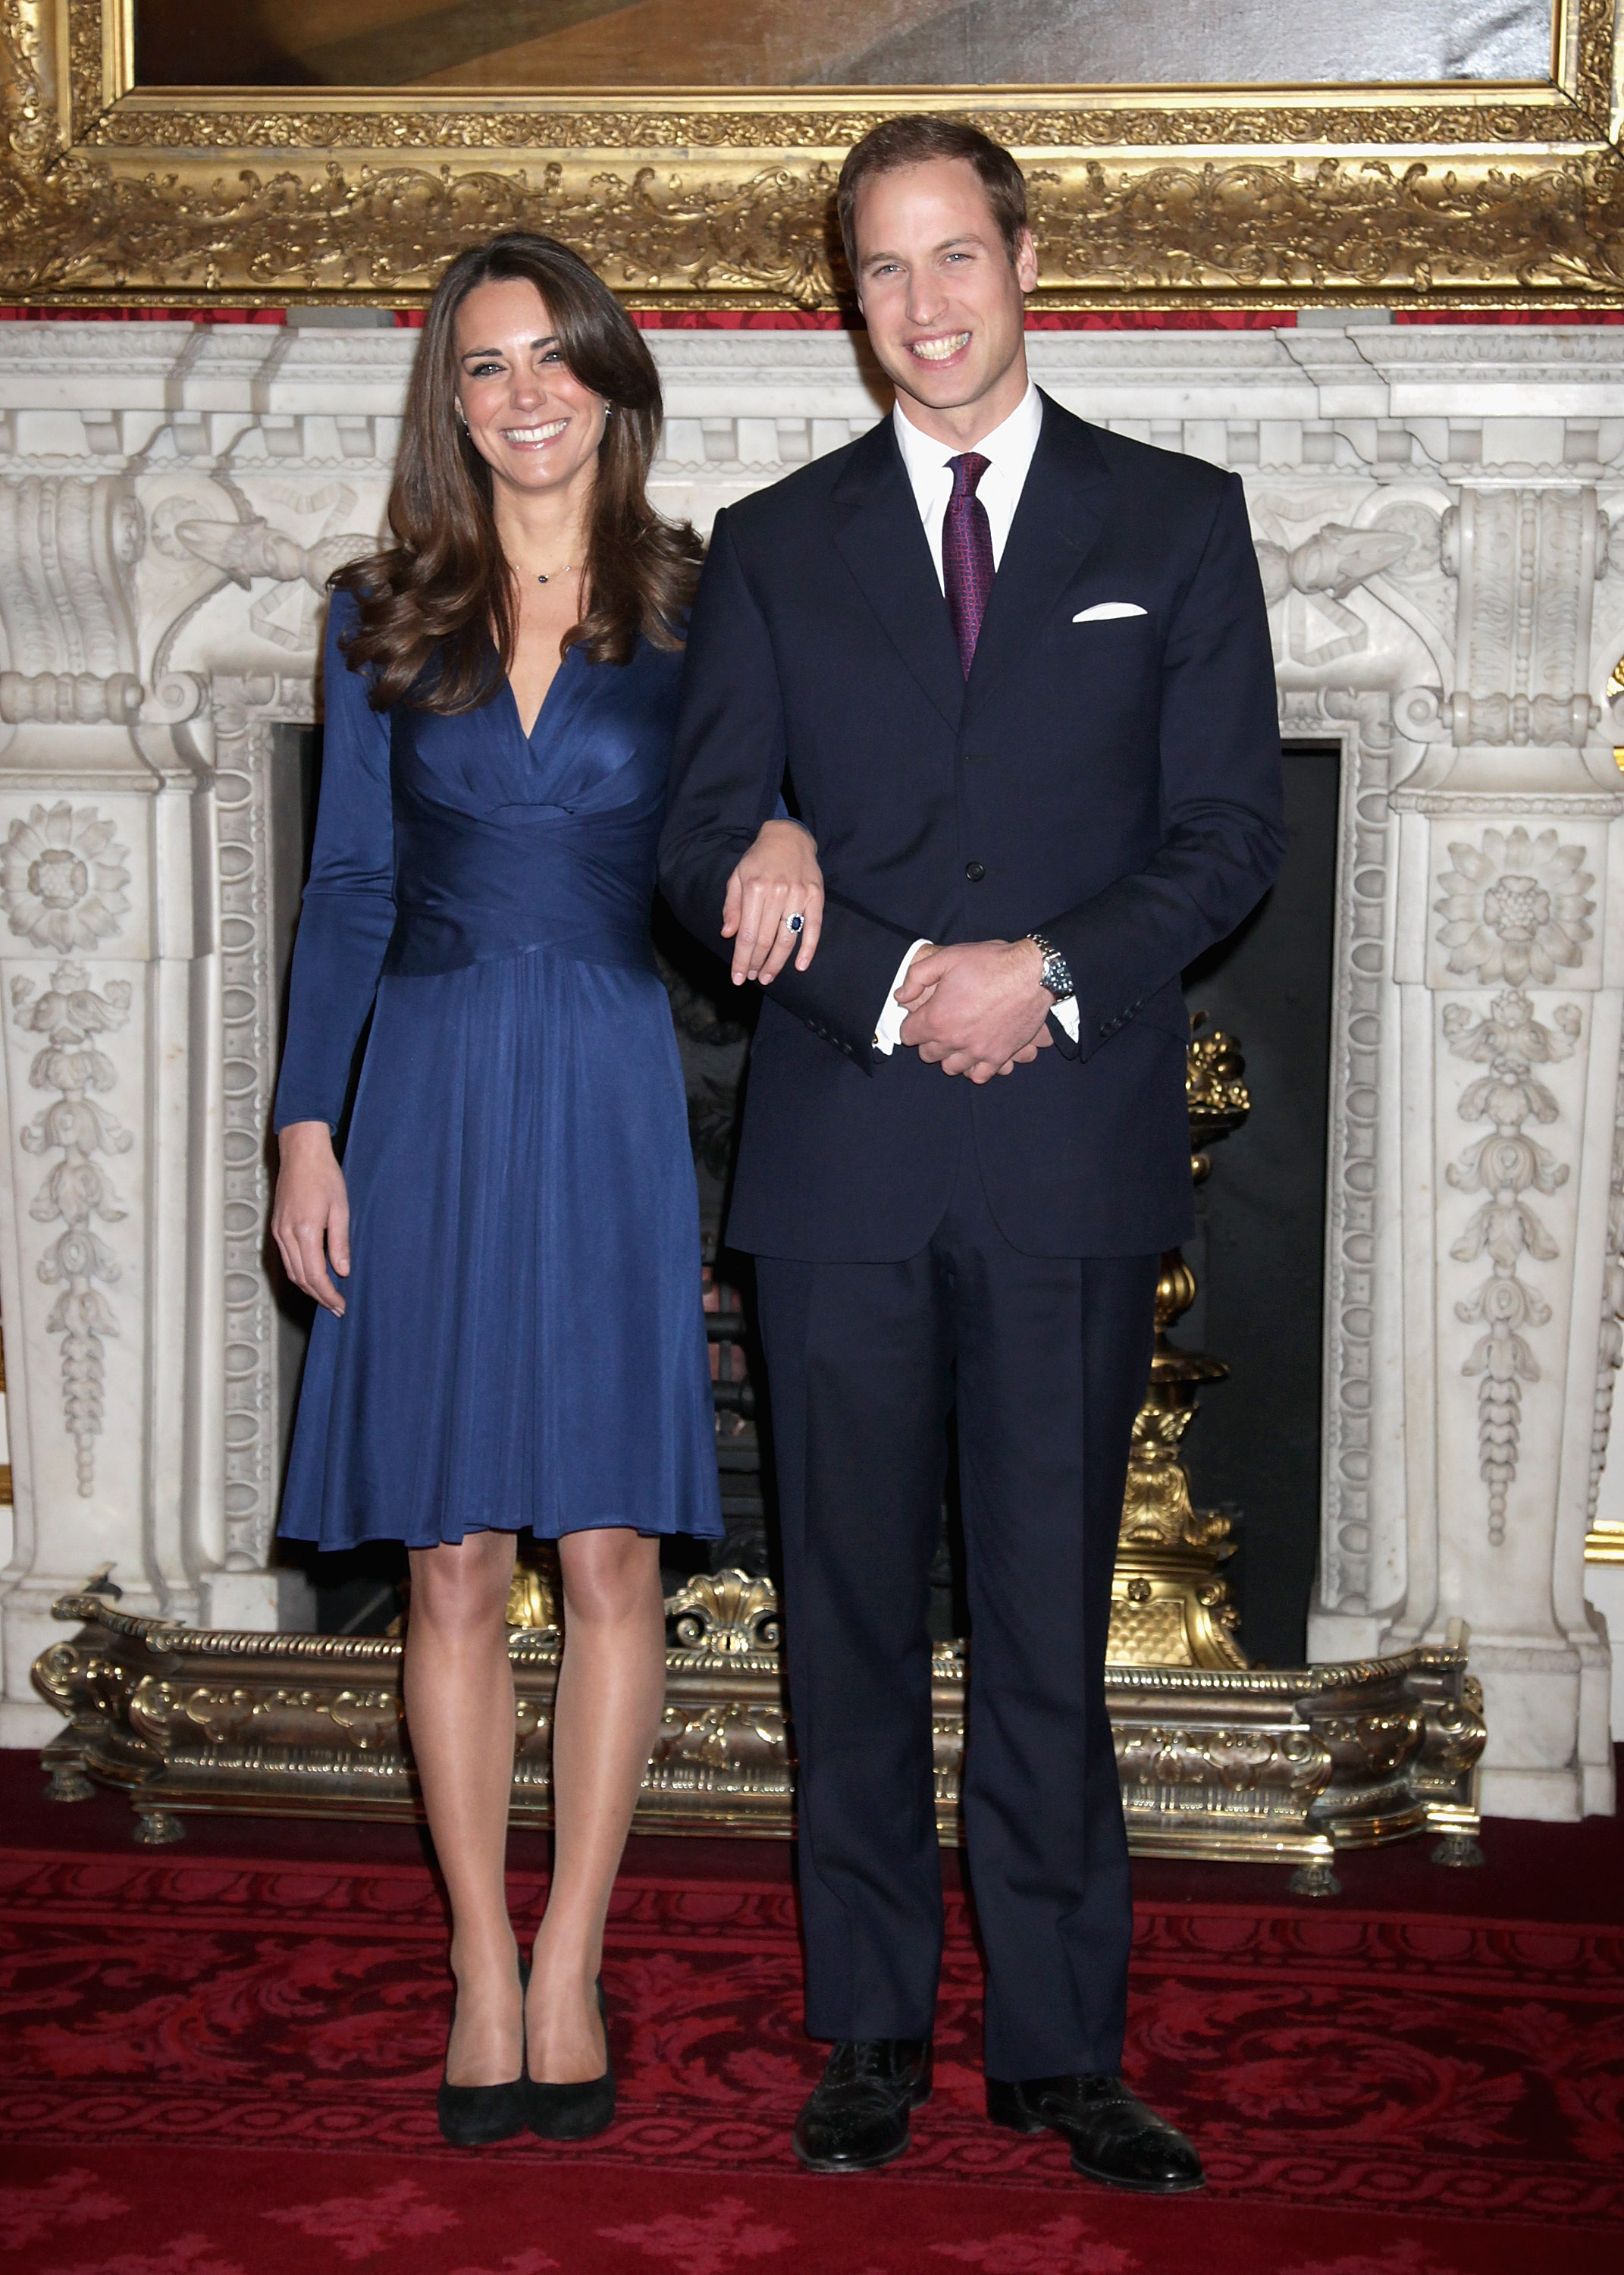 Kate Middleton, compromiso, vestido